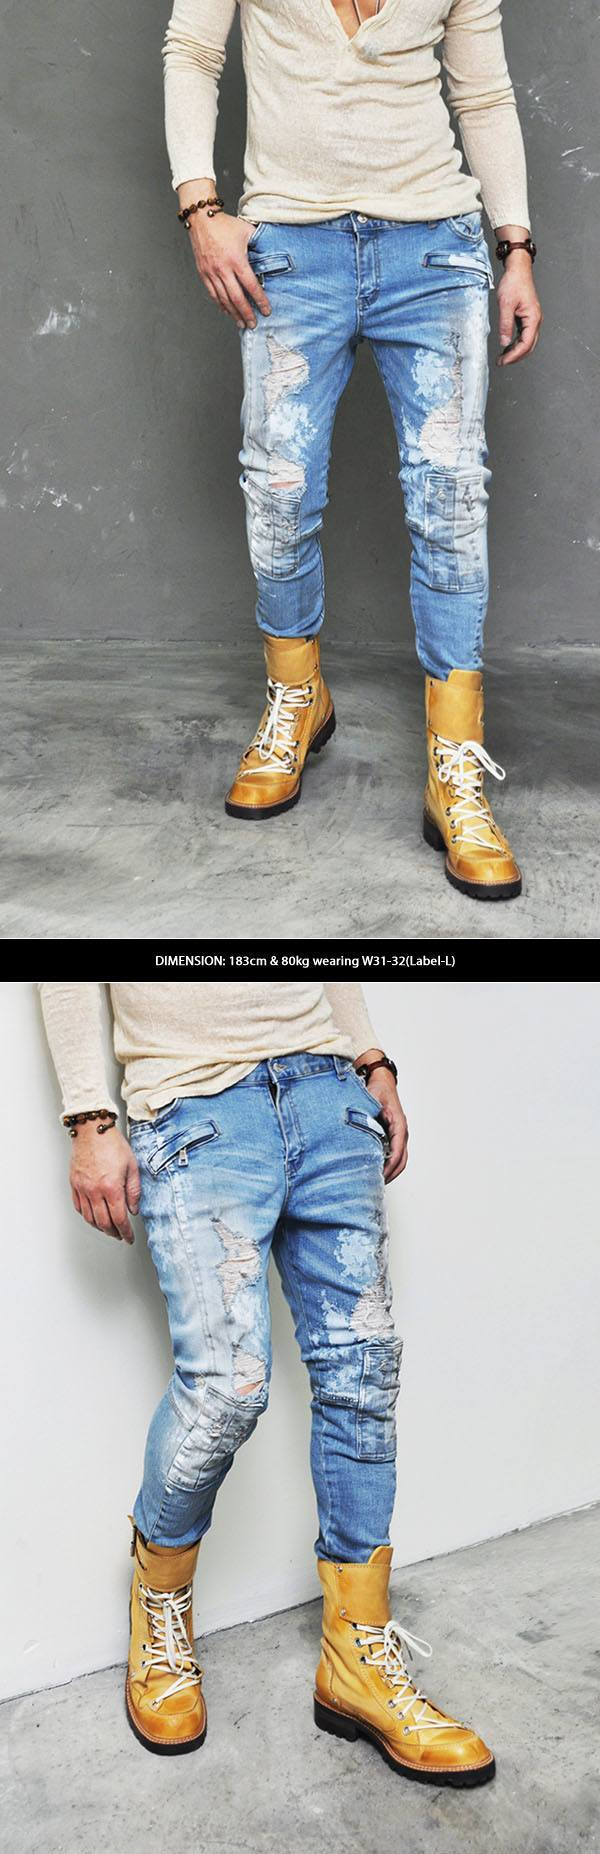 Rough Jeans for Boys